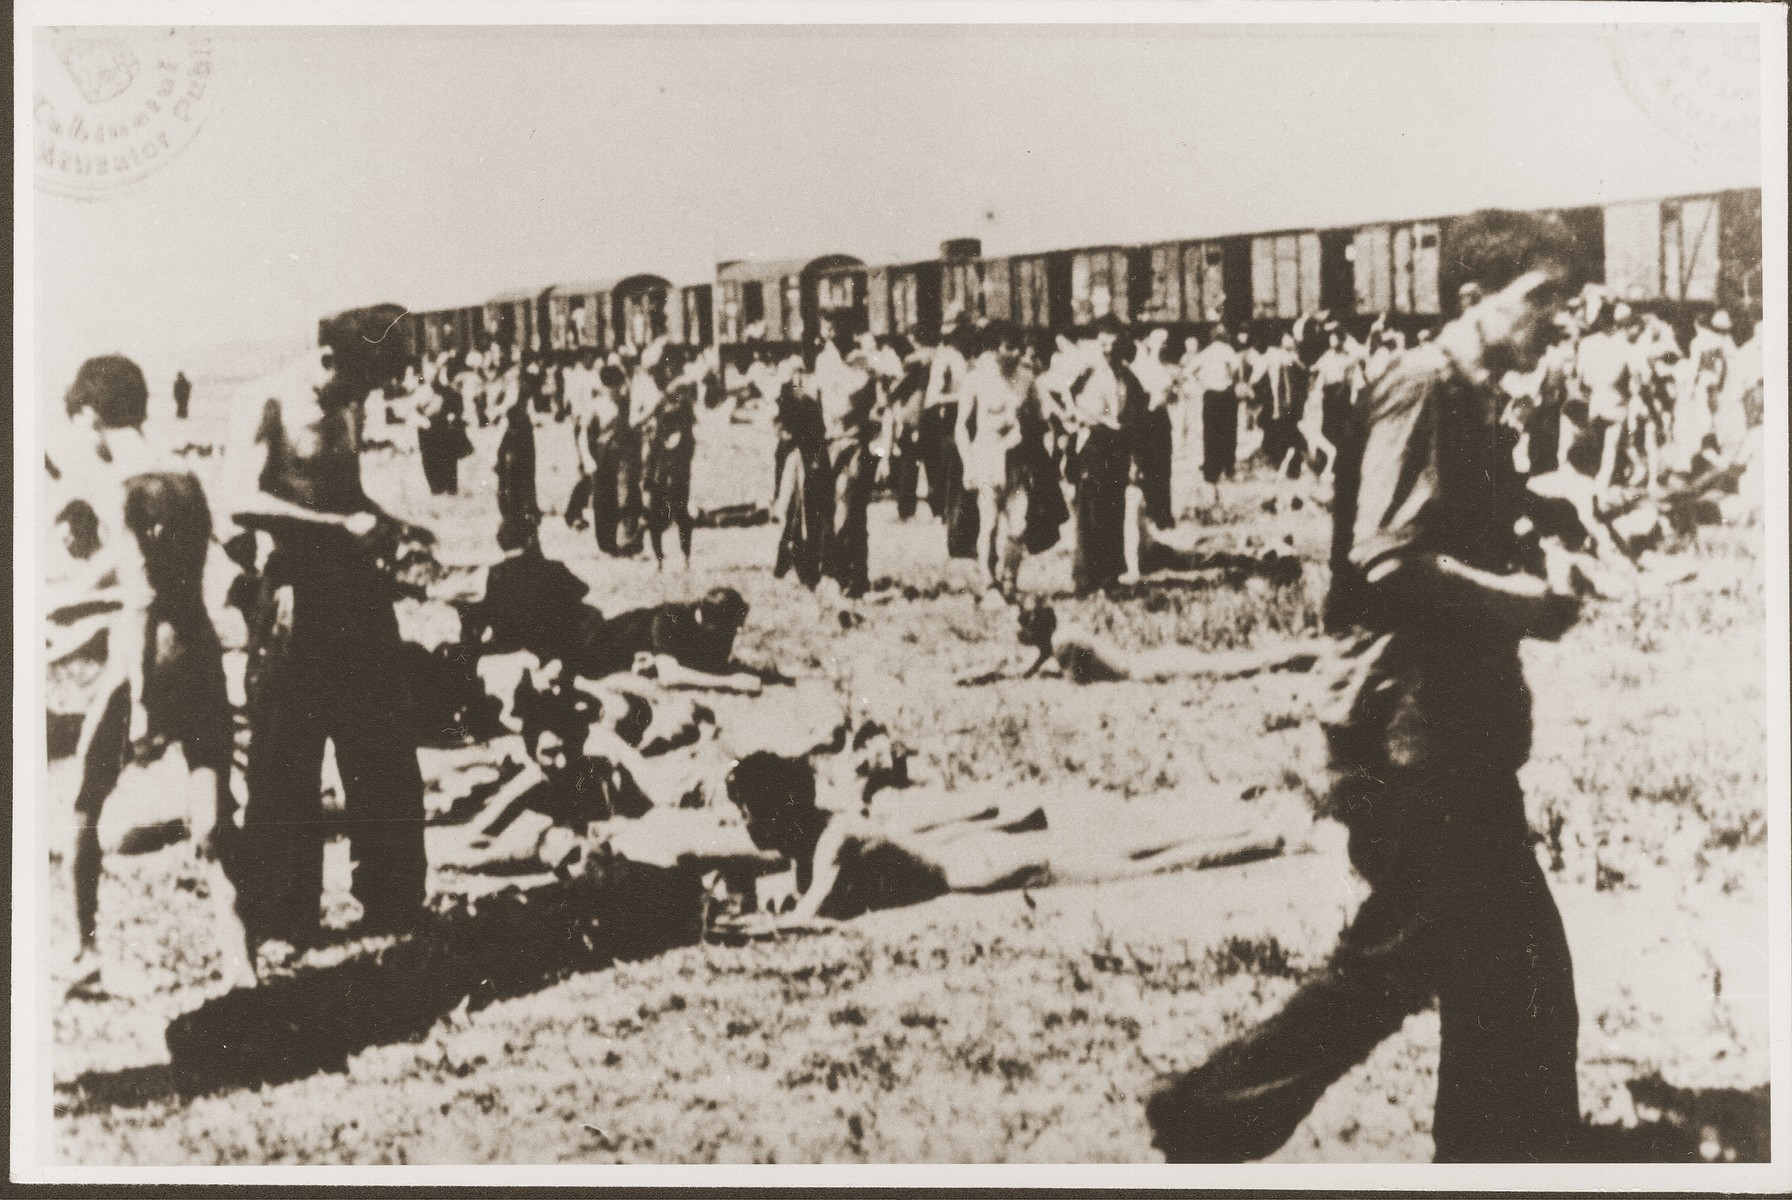 Jewish passengers on the Iasi death train rest in a field beside the tracks during a stop on the journey.